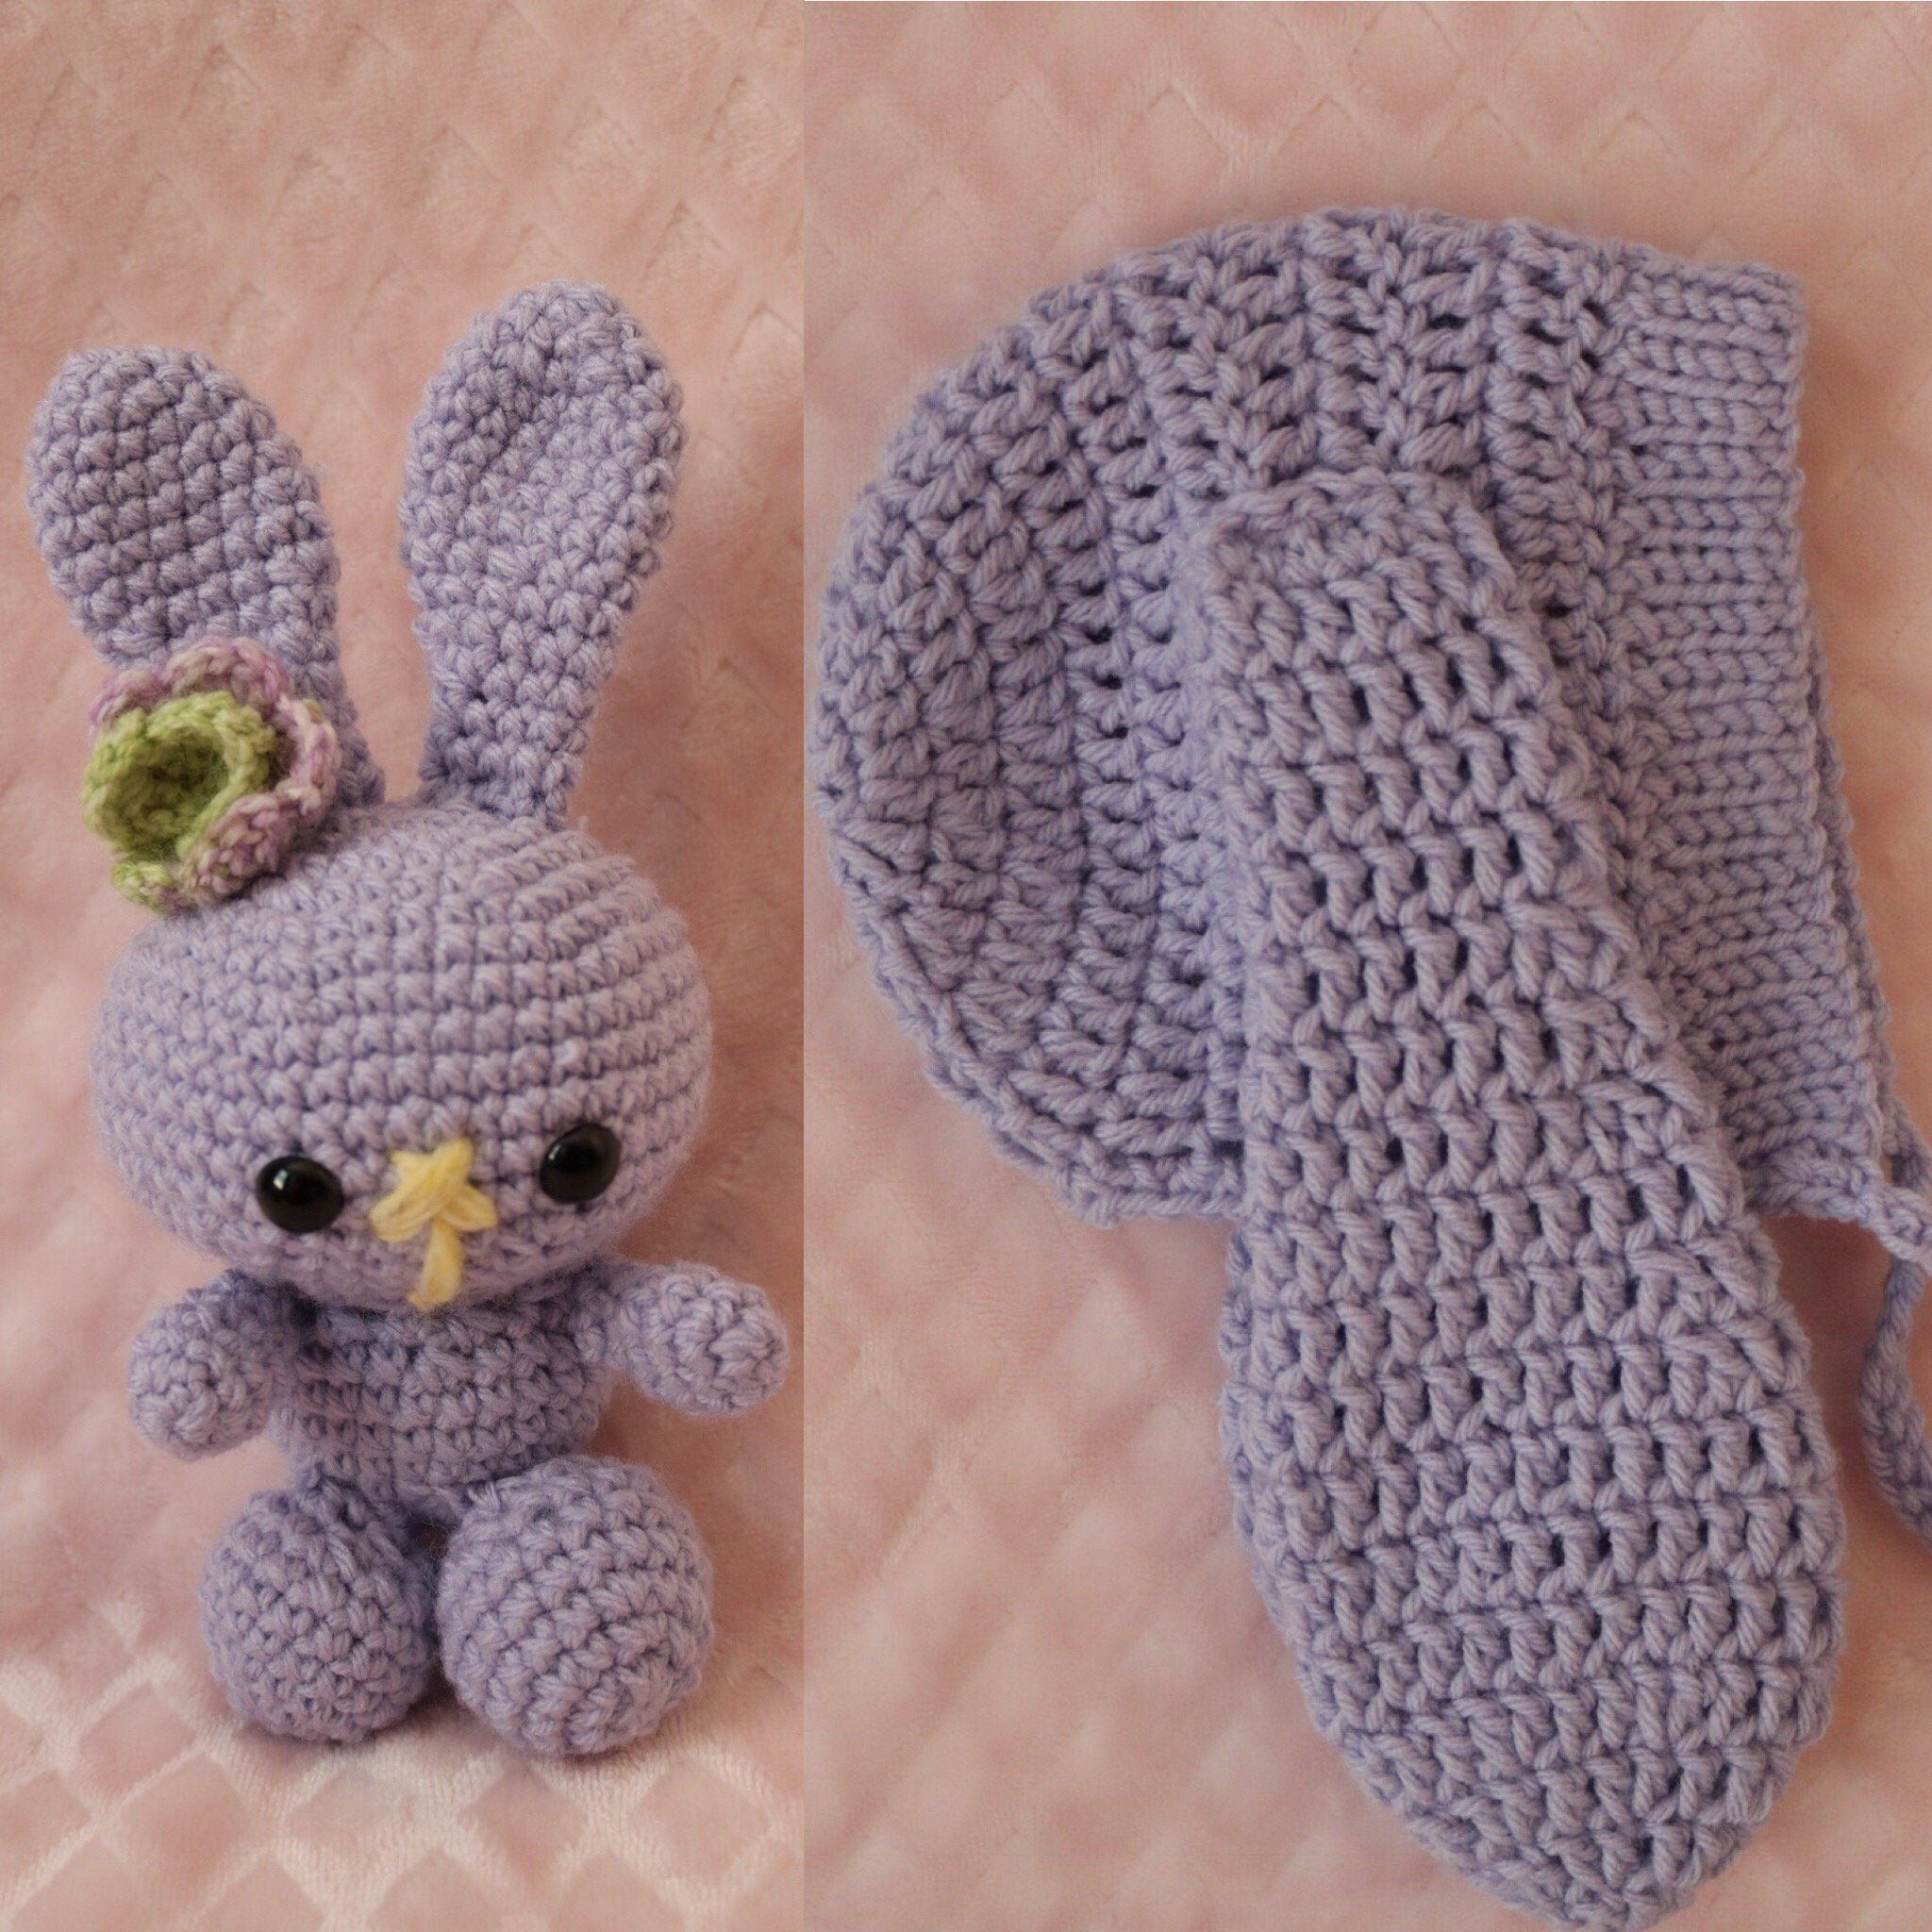 Crochet Bunny Plush and Baby Hat Set, Bunny Amigurumi, Bunny Plush, Crochet Toy, Baby Hat, Baby Bunny Hat, Hat and Plush Set, Newborn Photo #bunnyplush